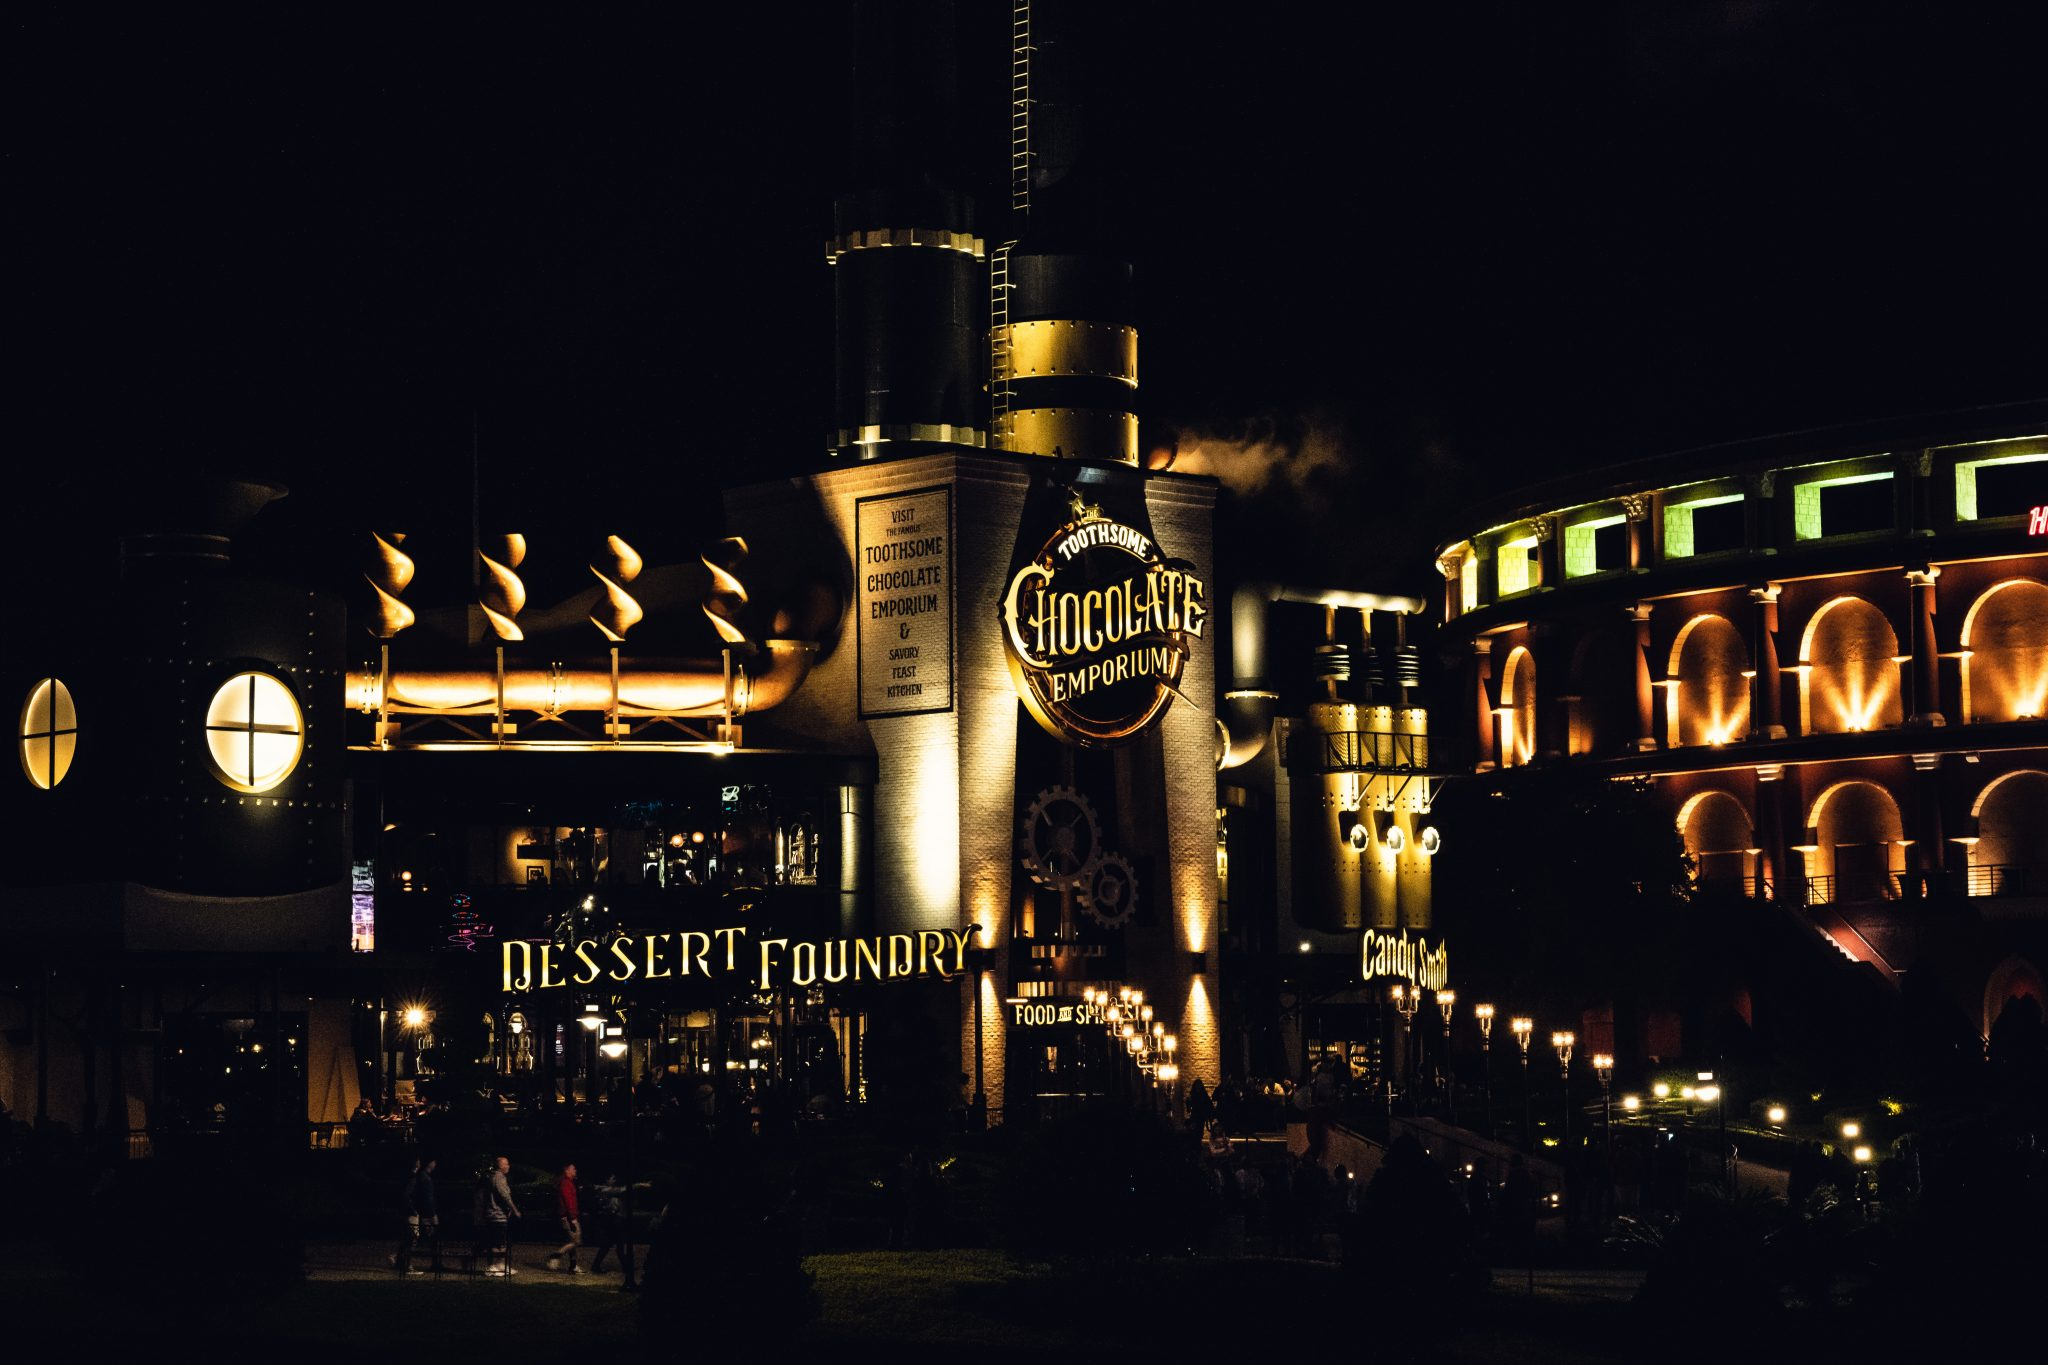 The Toothsome Chocolate Emporium